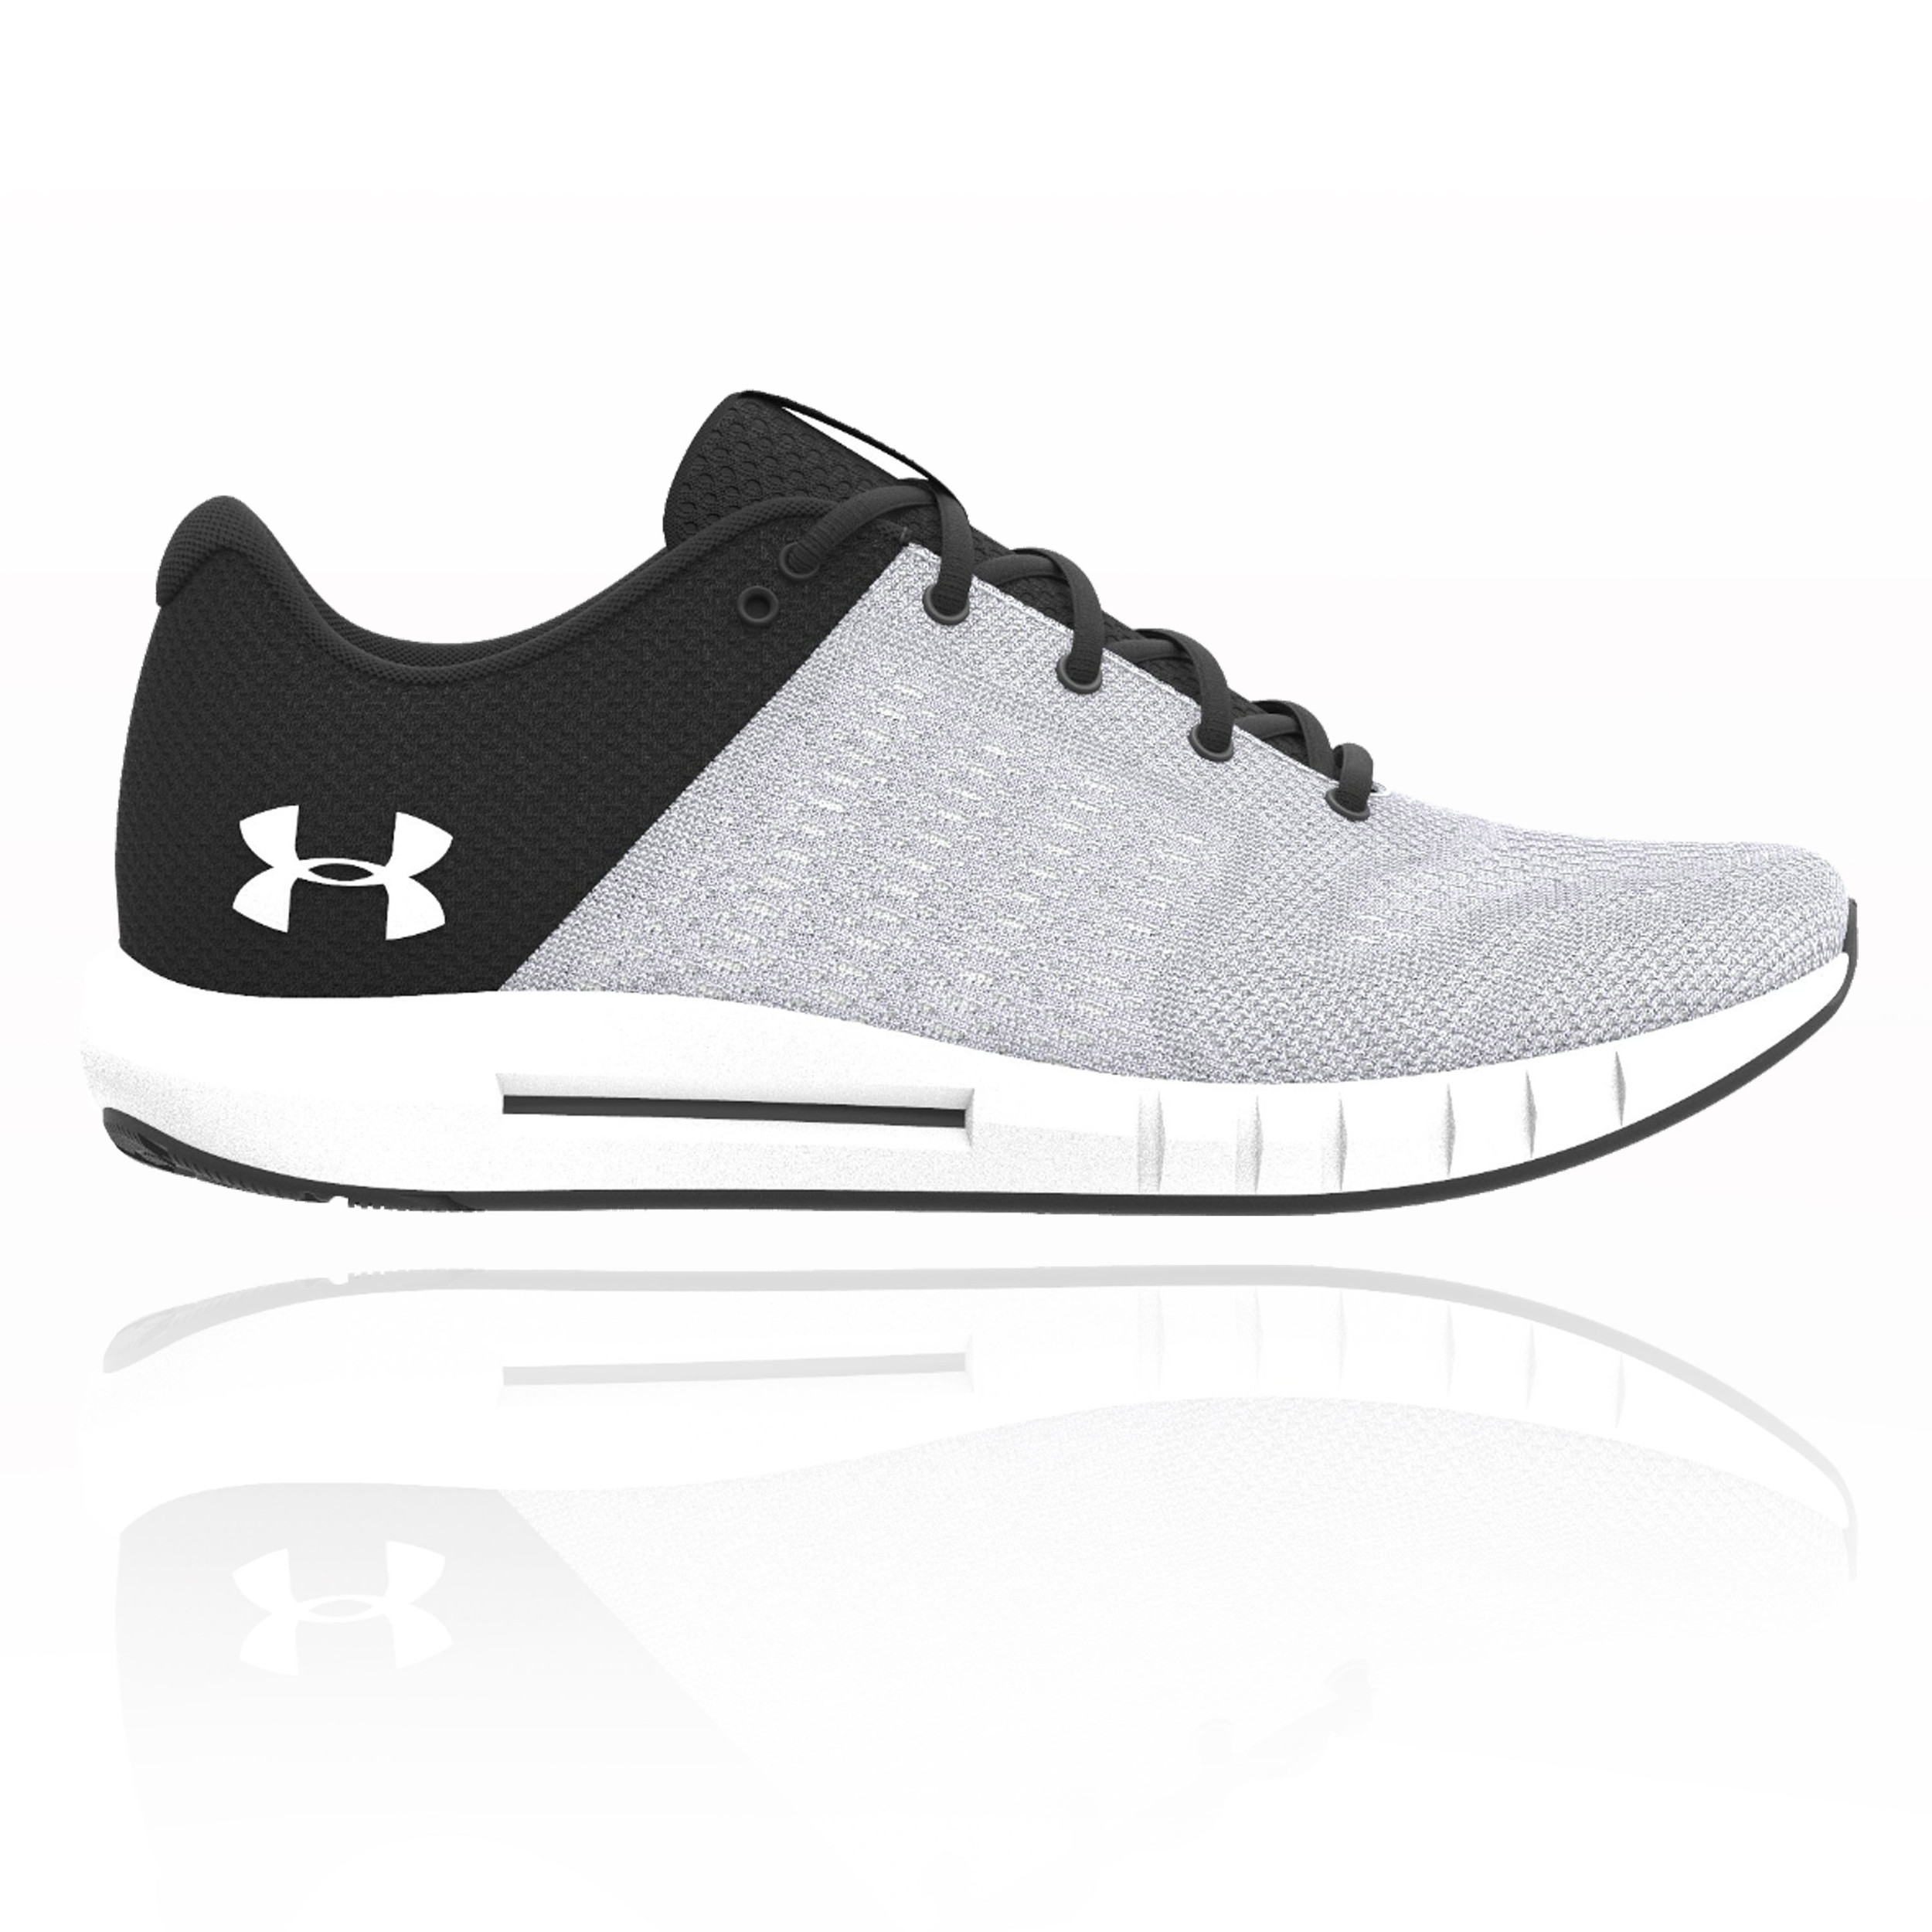 8c5bbe493e Details about Under Armour Mens Micro G Pursuit Running Shoes Trainers  Sneakers Grey Sports